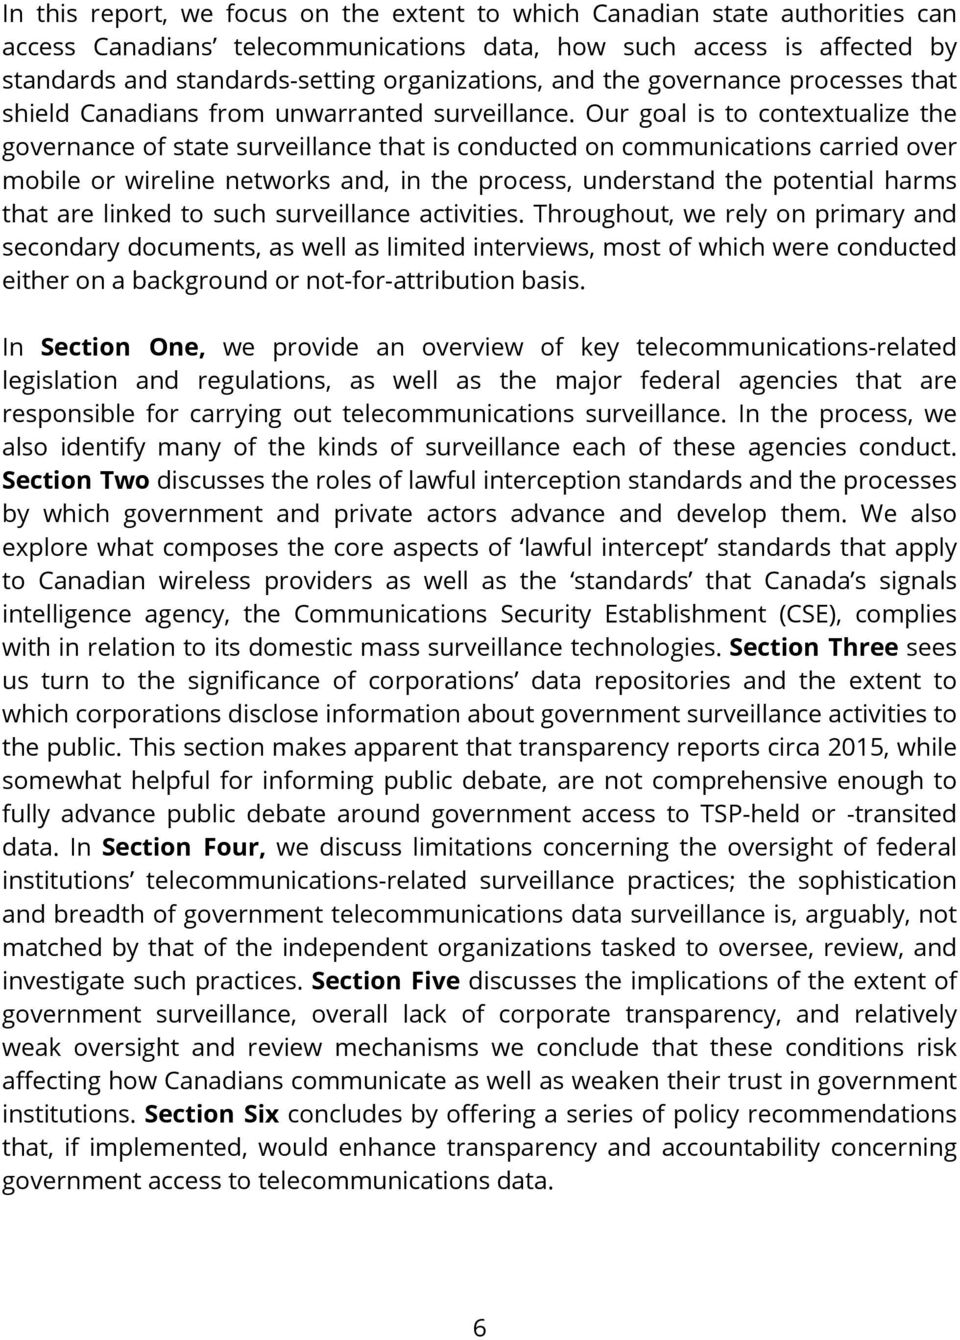 Our goal is to contextualize the governance of state surveillance that is conducted on communications carried over mobile or wireline networks and, in the process, understand the potential harms that